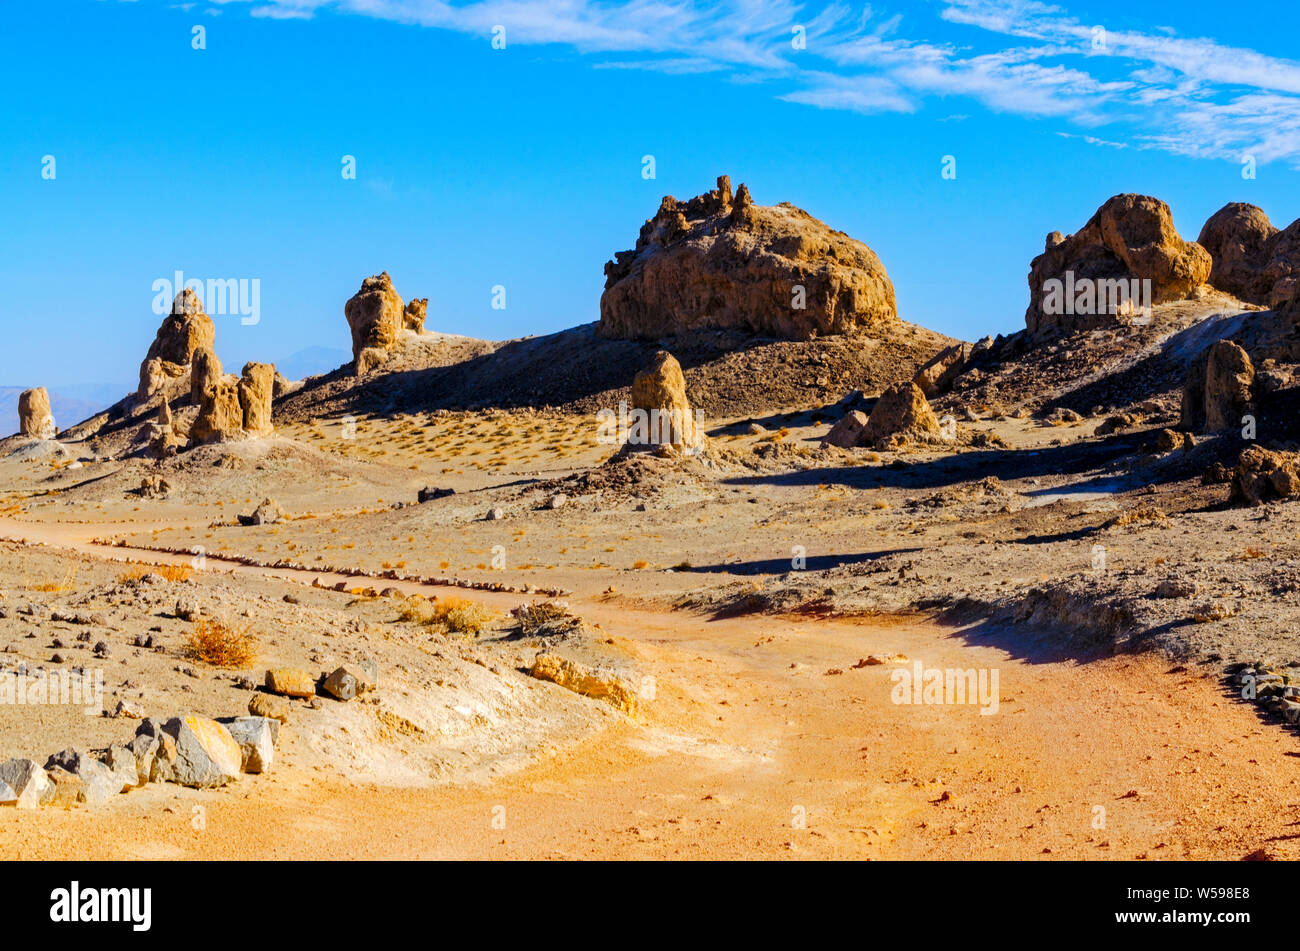 Reddish brown dirt road leading towards desert rock formations in the morning sunlight under bright blue skies. Stock Photo